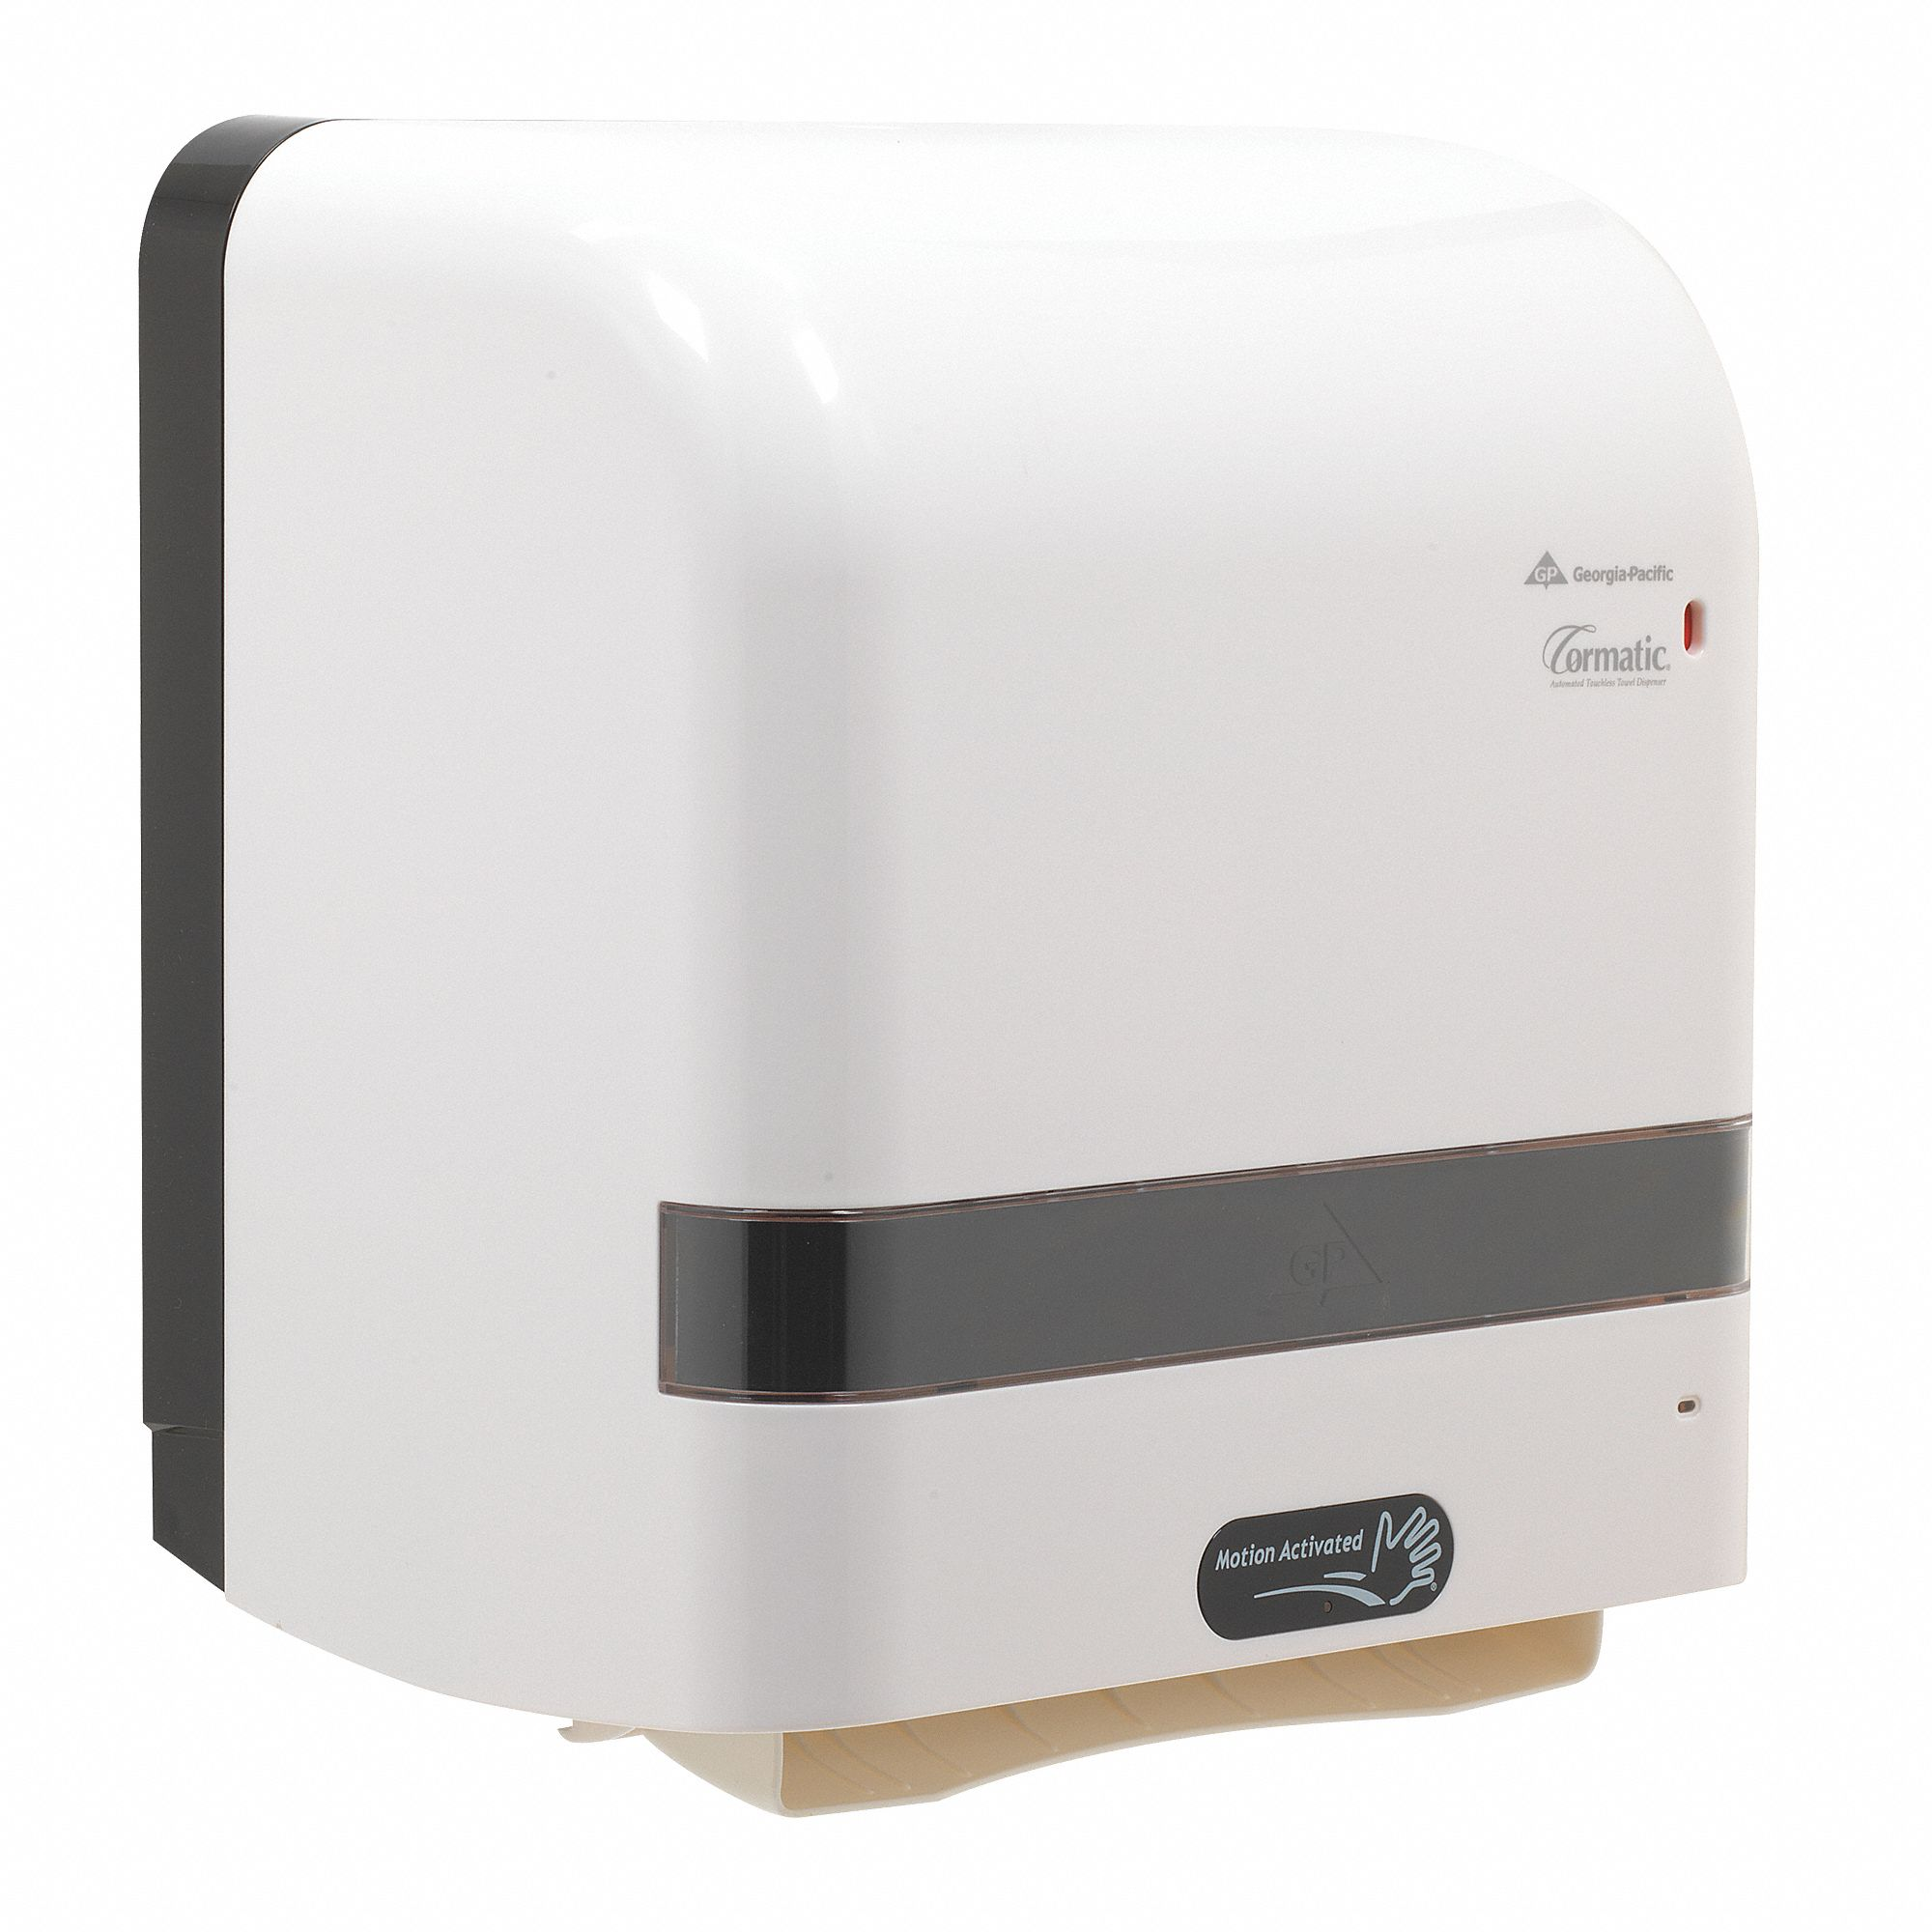 automatic paper towel dispenser for kitchen stove with griddle georgia pacific cormatic proprietary hardwound white 2gxa1 ads200k grainger